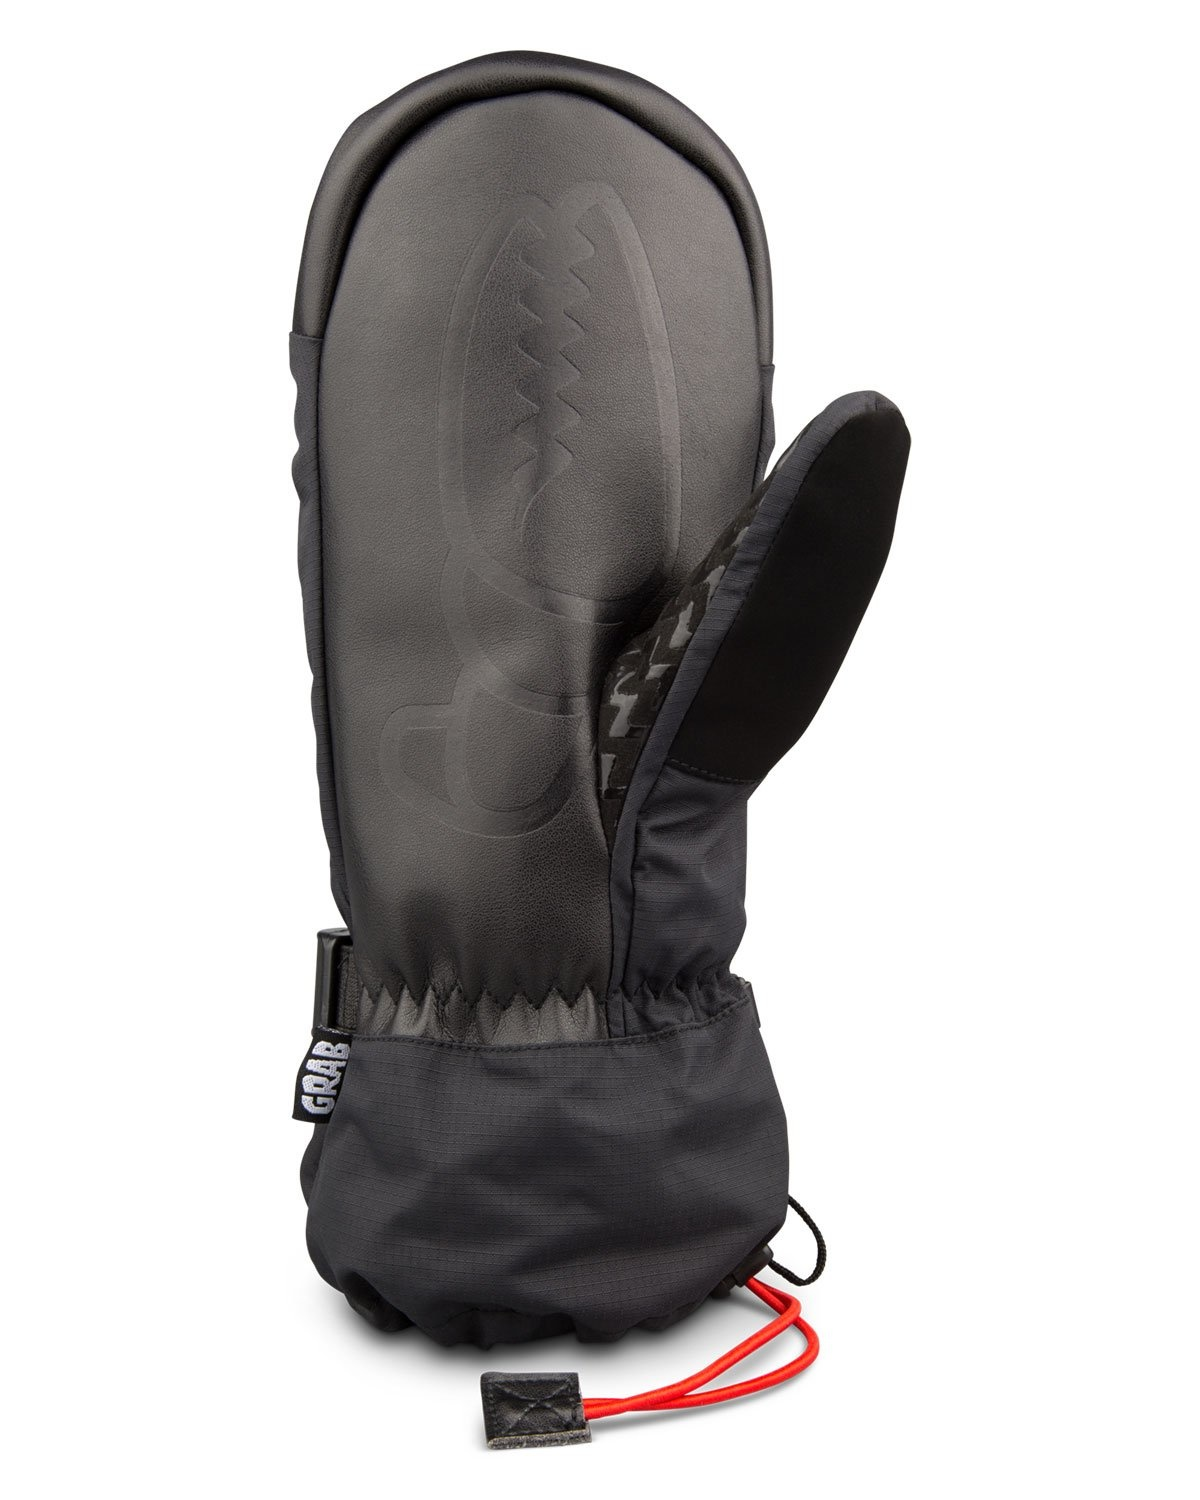 Cinch Mitt Black